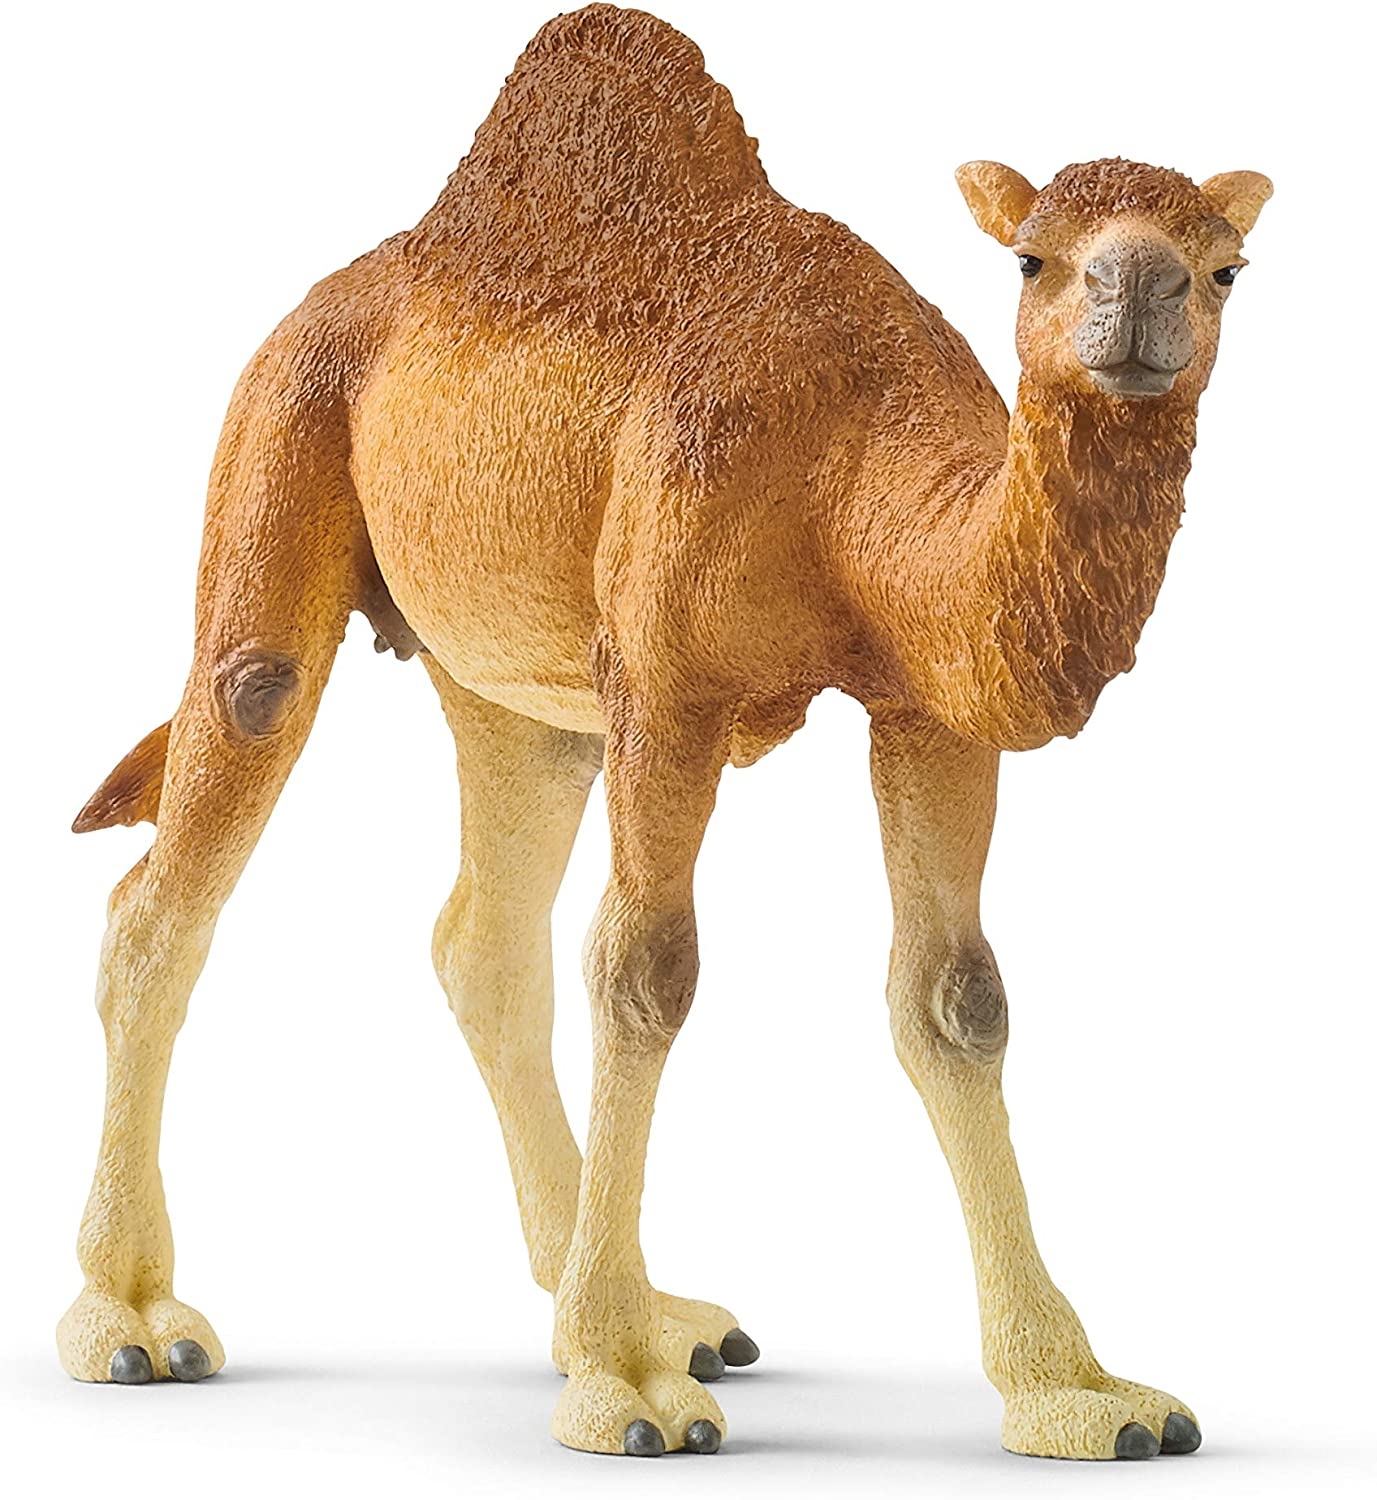 SCHLEICH Wild Life Arabian Camel Dromedary Toy Figurine for Kids Ages 3-8 with 1 Hump